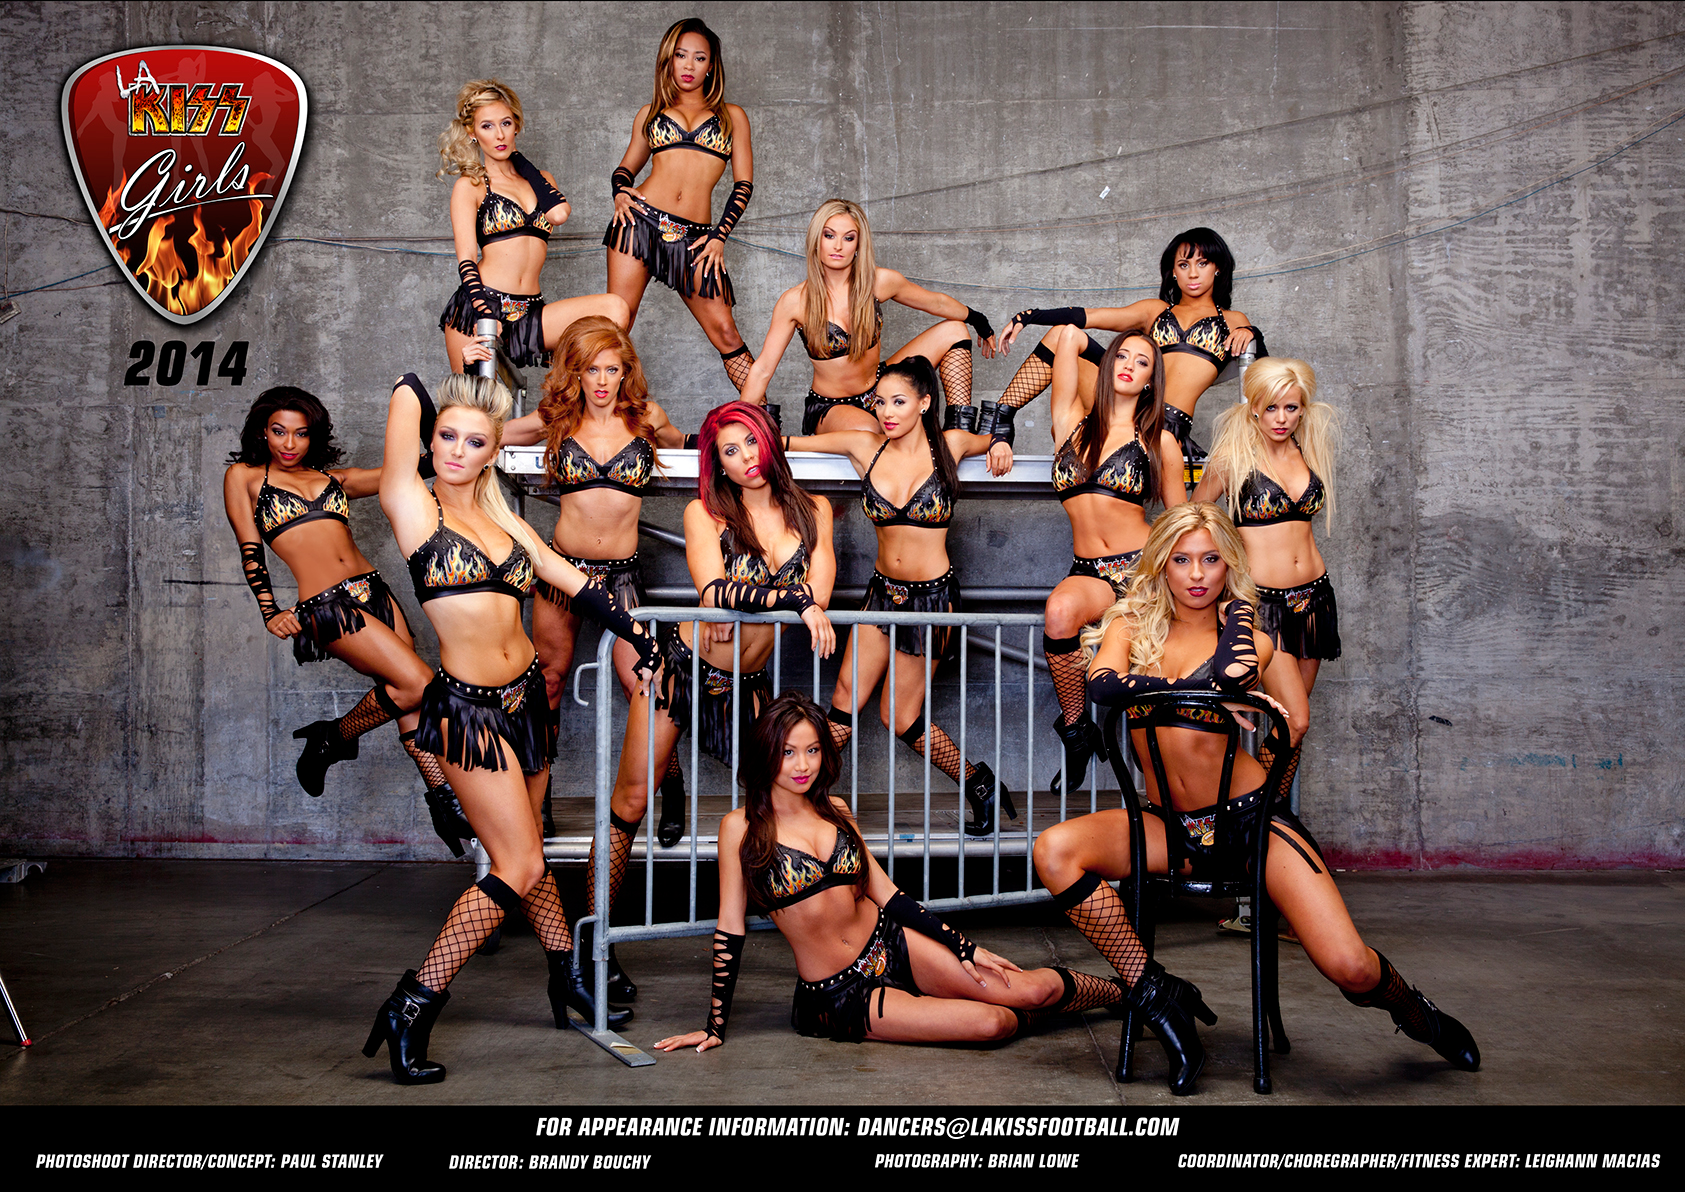 The LA KISS GIrls